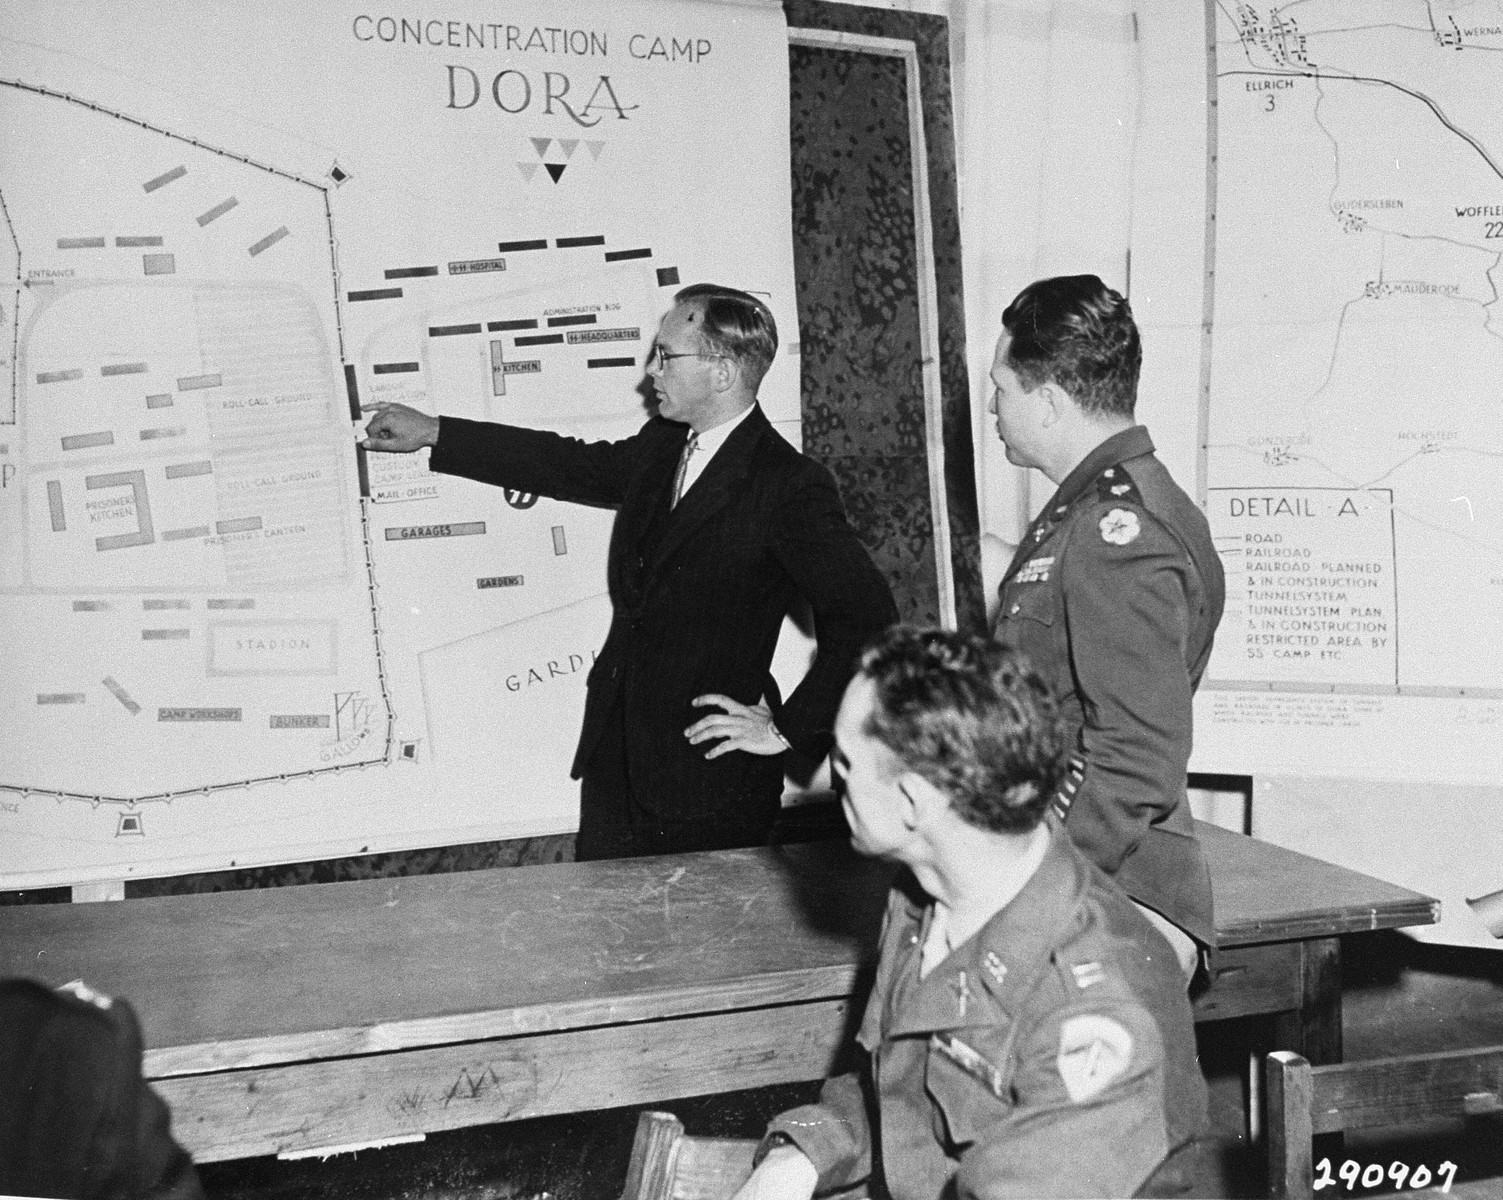 Tadeusz Patzer, a prosecution witness from Poland, points out the location of the labor allocation offices at Nordhausen, during the trial of former camp personnel and prisoners from Dora-Mittelbau.    Patzer had been a political prisoner at Auschwitz, Buchenwald, and finally Nordhausen.  Looking on are defense counsel Major Leon G. Poullada (right) and assistant prosecutor Captain William F. McGarry (foreground).